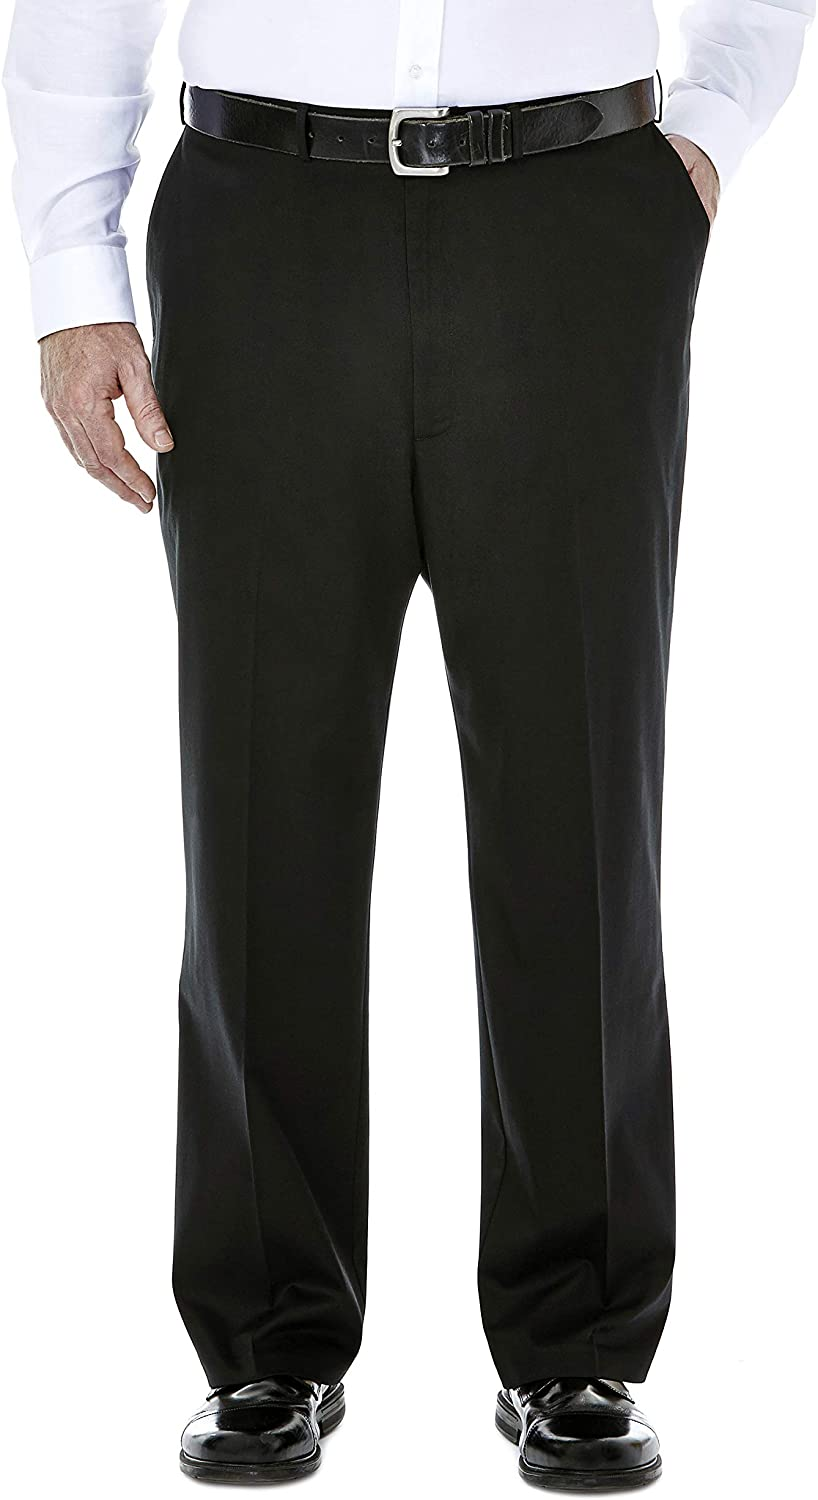 Haggar Men's Big-Tall Premium No Iron Classic Fit Expandable Waist Plain Front Pant Black 48x34